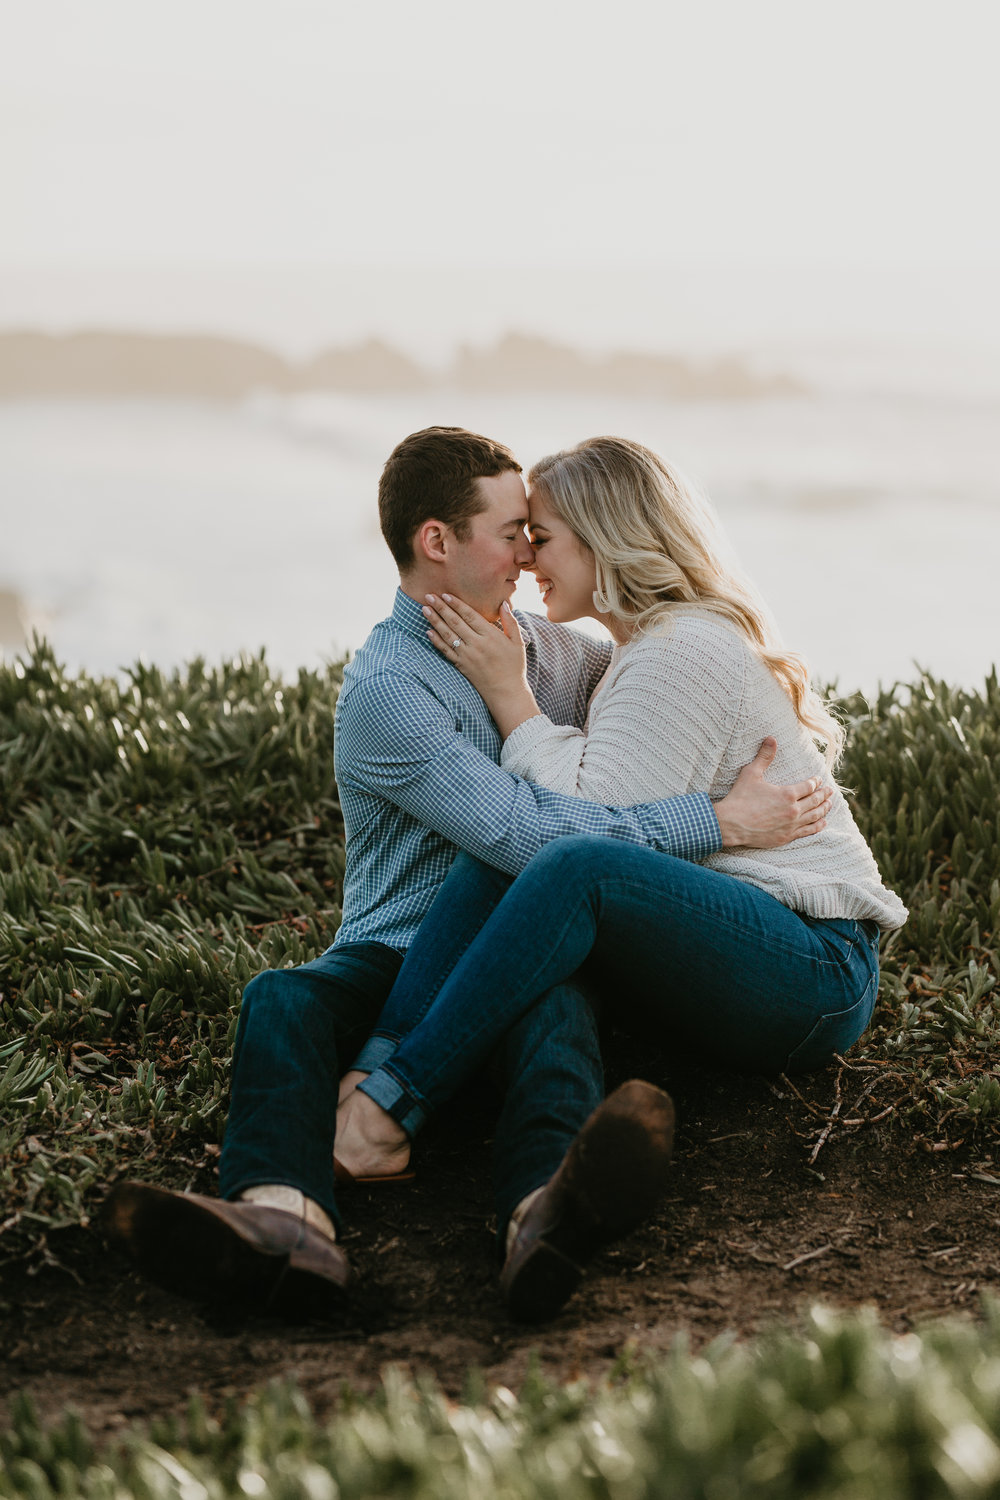 Nicole-Daacke-Photography-big-sur-garrapatta-state-park-adventurous-engagement-session-bixy-bridge-elopement-big-sur-wedding-photographer-monterey-elopement-photographer-california-golden-sunset-coast-photos-21.jpg